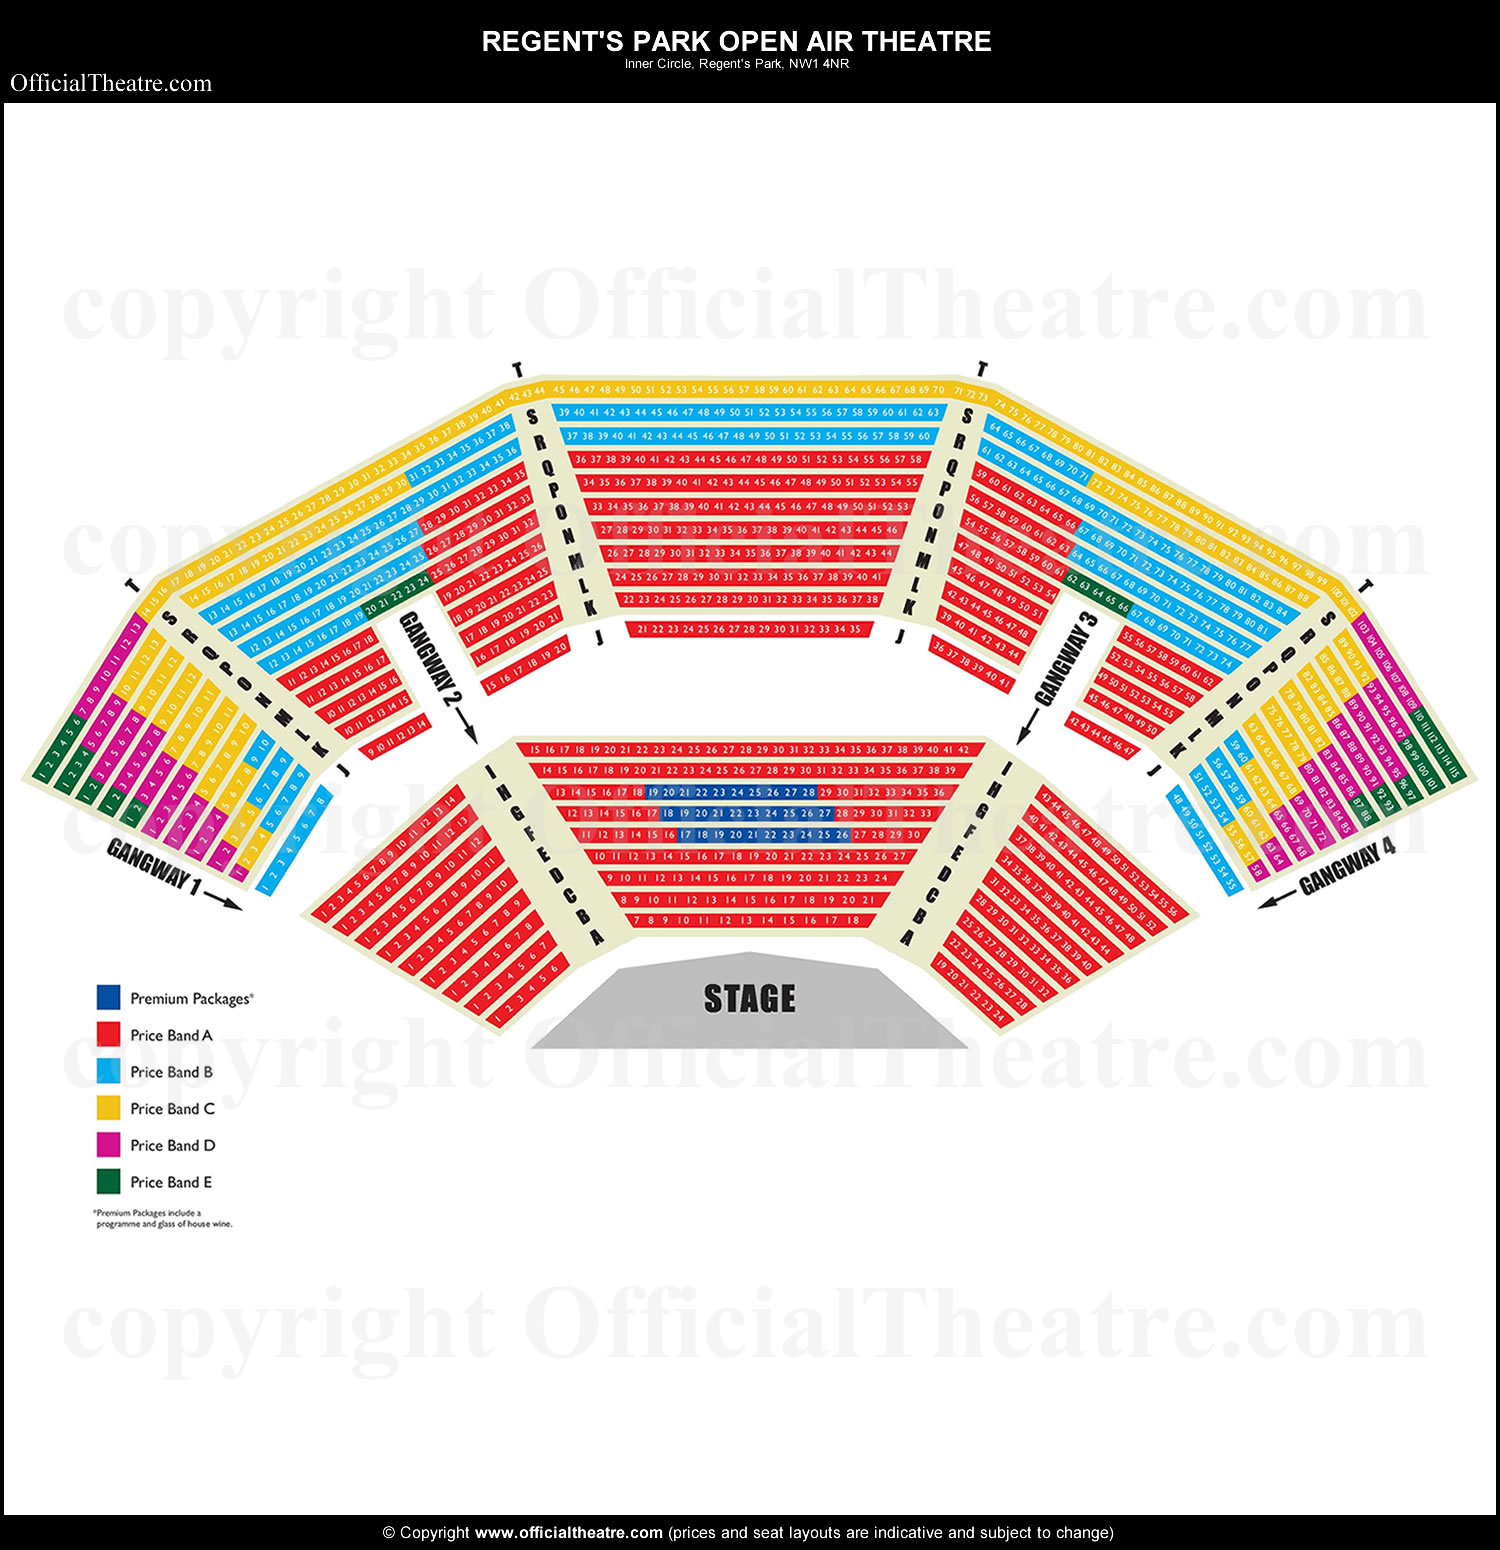 Regents Park Open Air Theatre London seat map and prices for Peter Pan